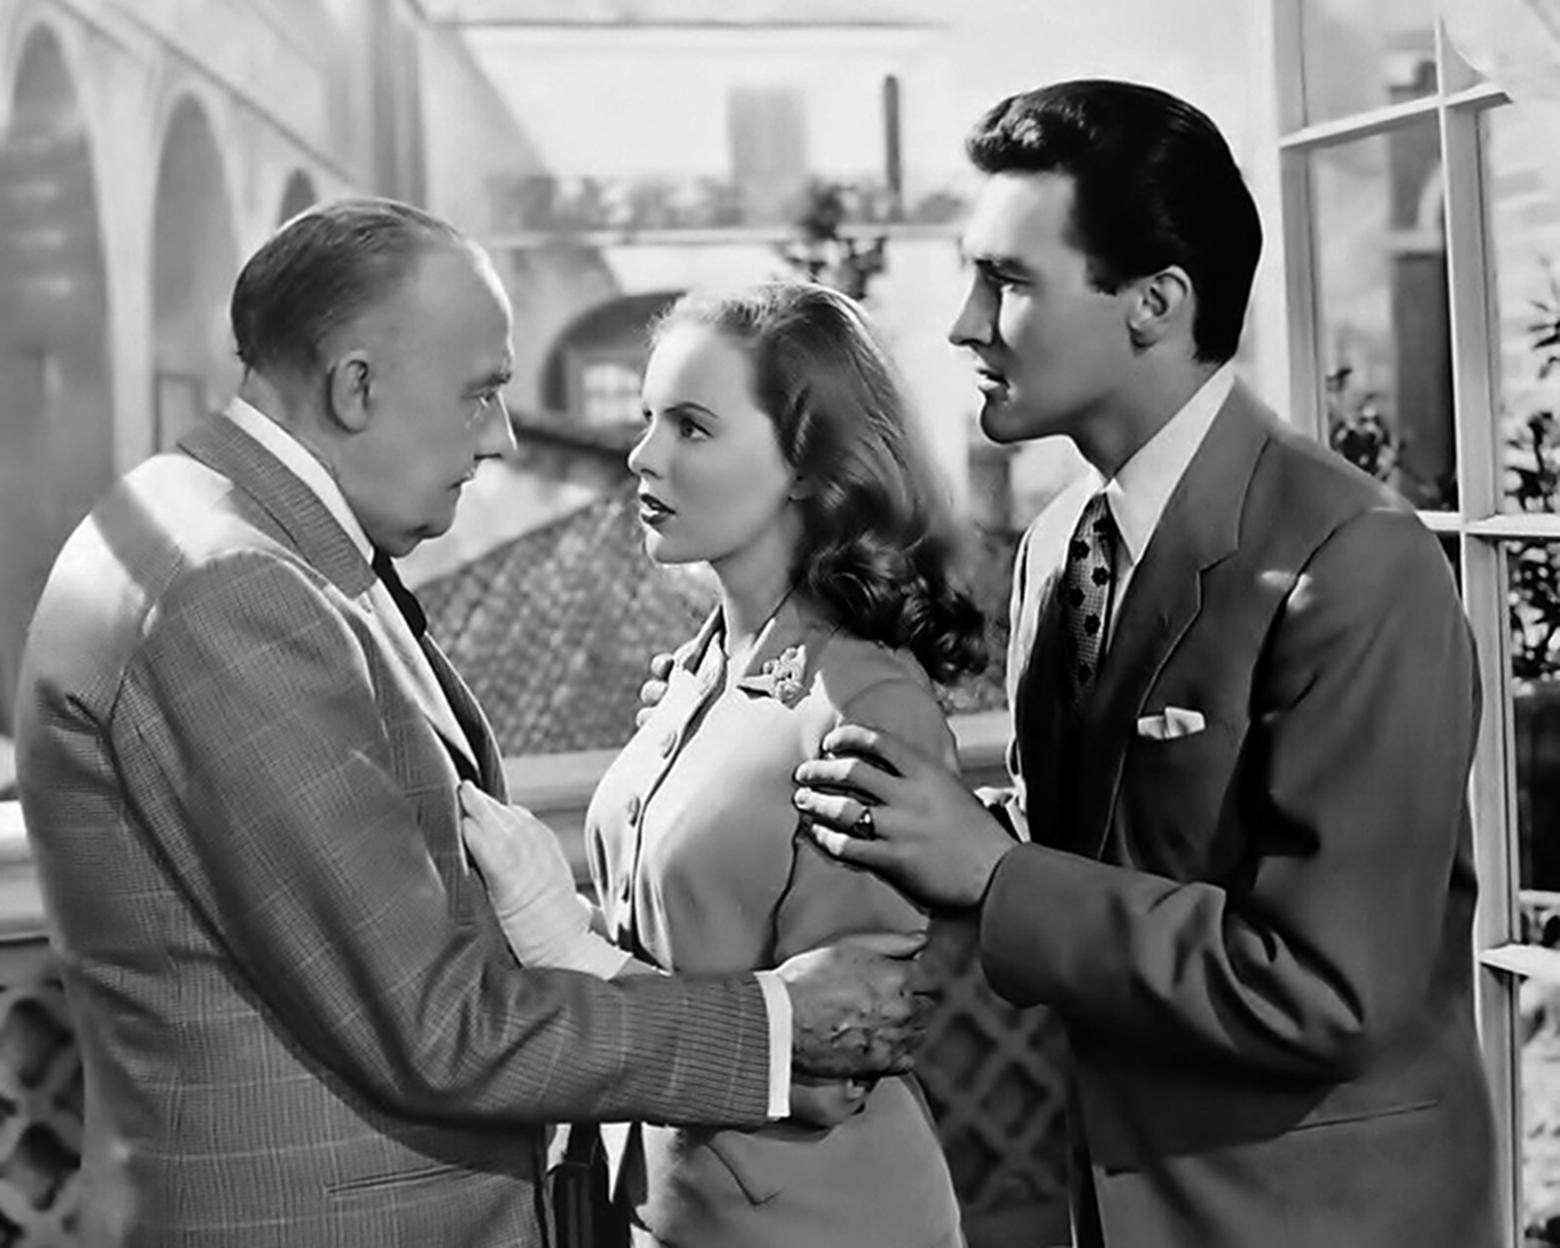 Peggy Cummins, Terence Morgan, and Ronald Squire in Always a Bride (1953)